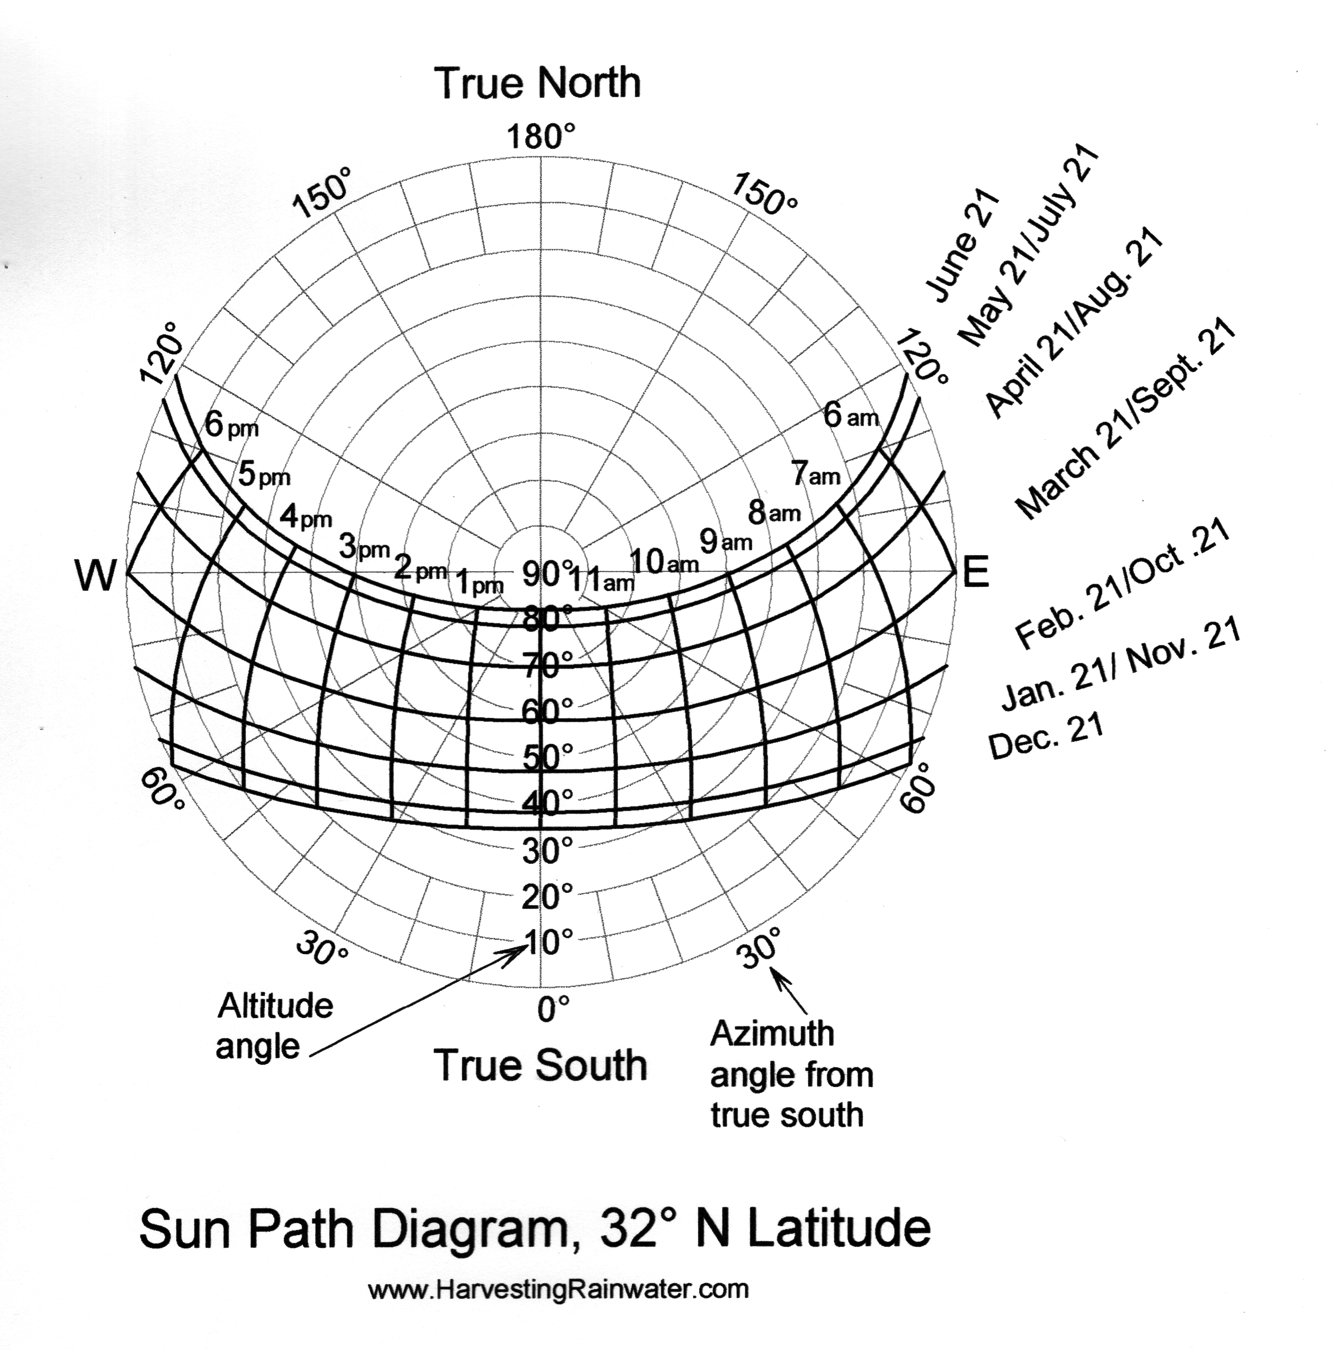 Sun Path Diagram 32o N Latitude